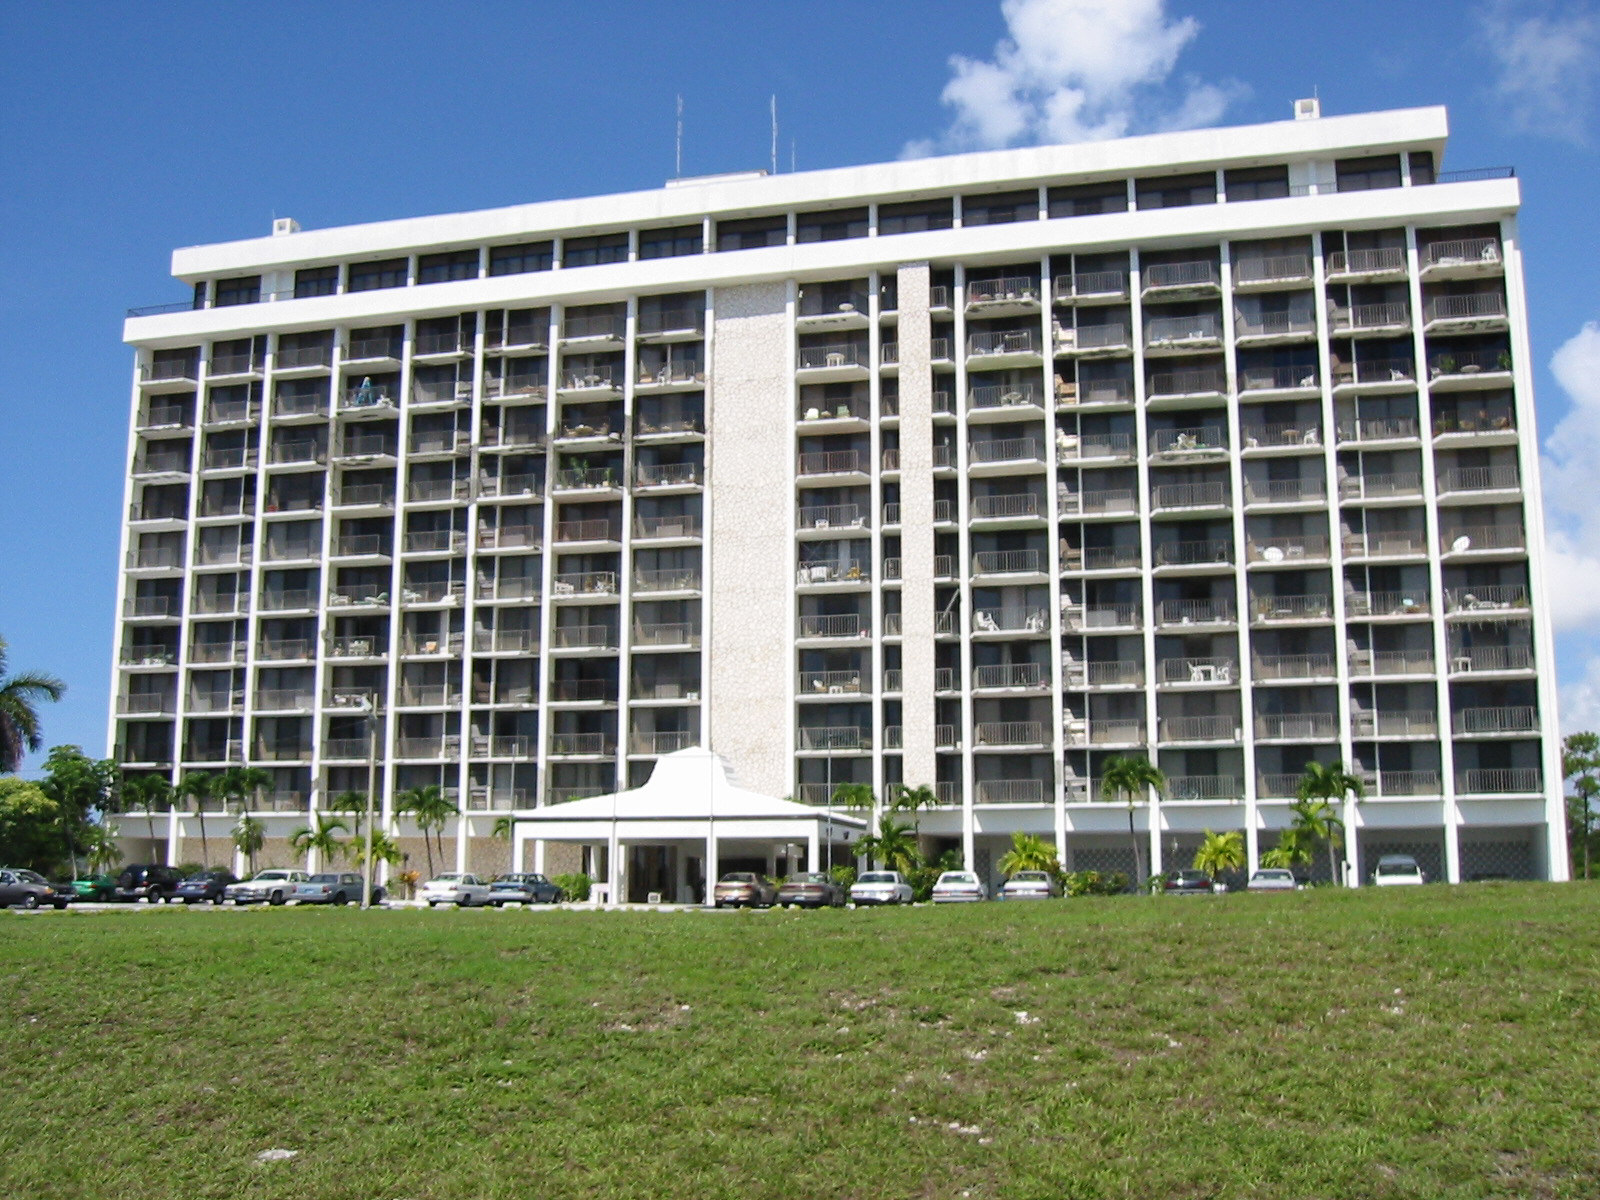 Co-op / Condo for Rent at Gorgeously renovated 2 bedroom condo in Lucayan Towers North Greening Glade, Grand Bahama, Bahamas